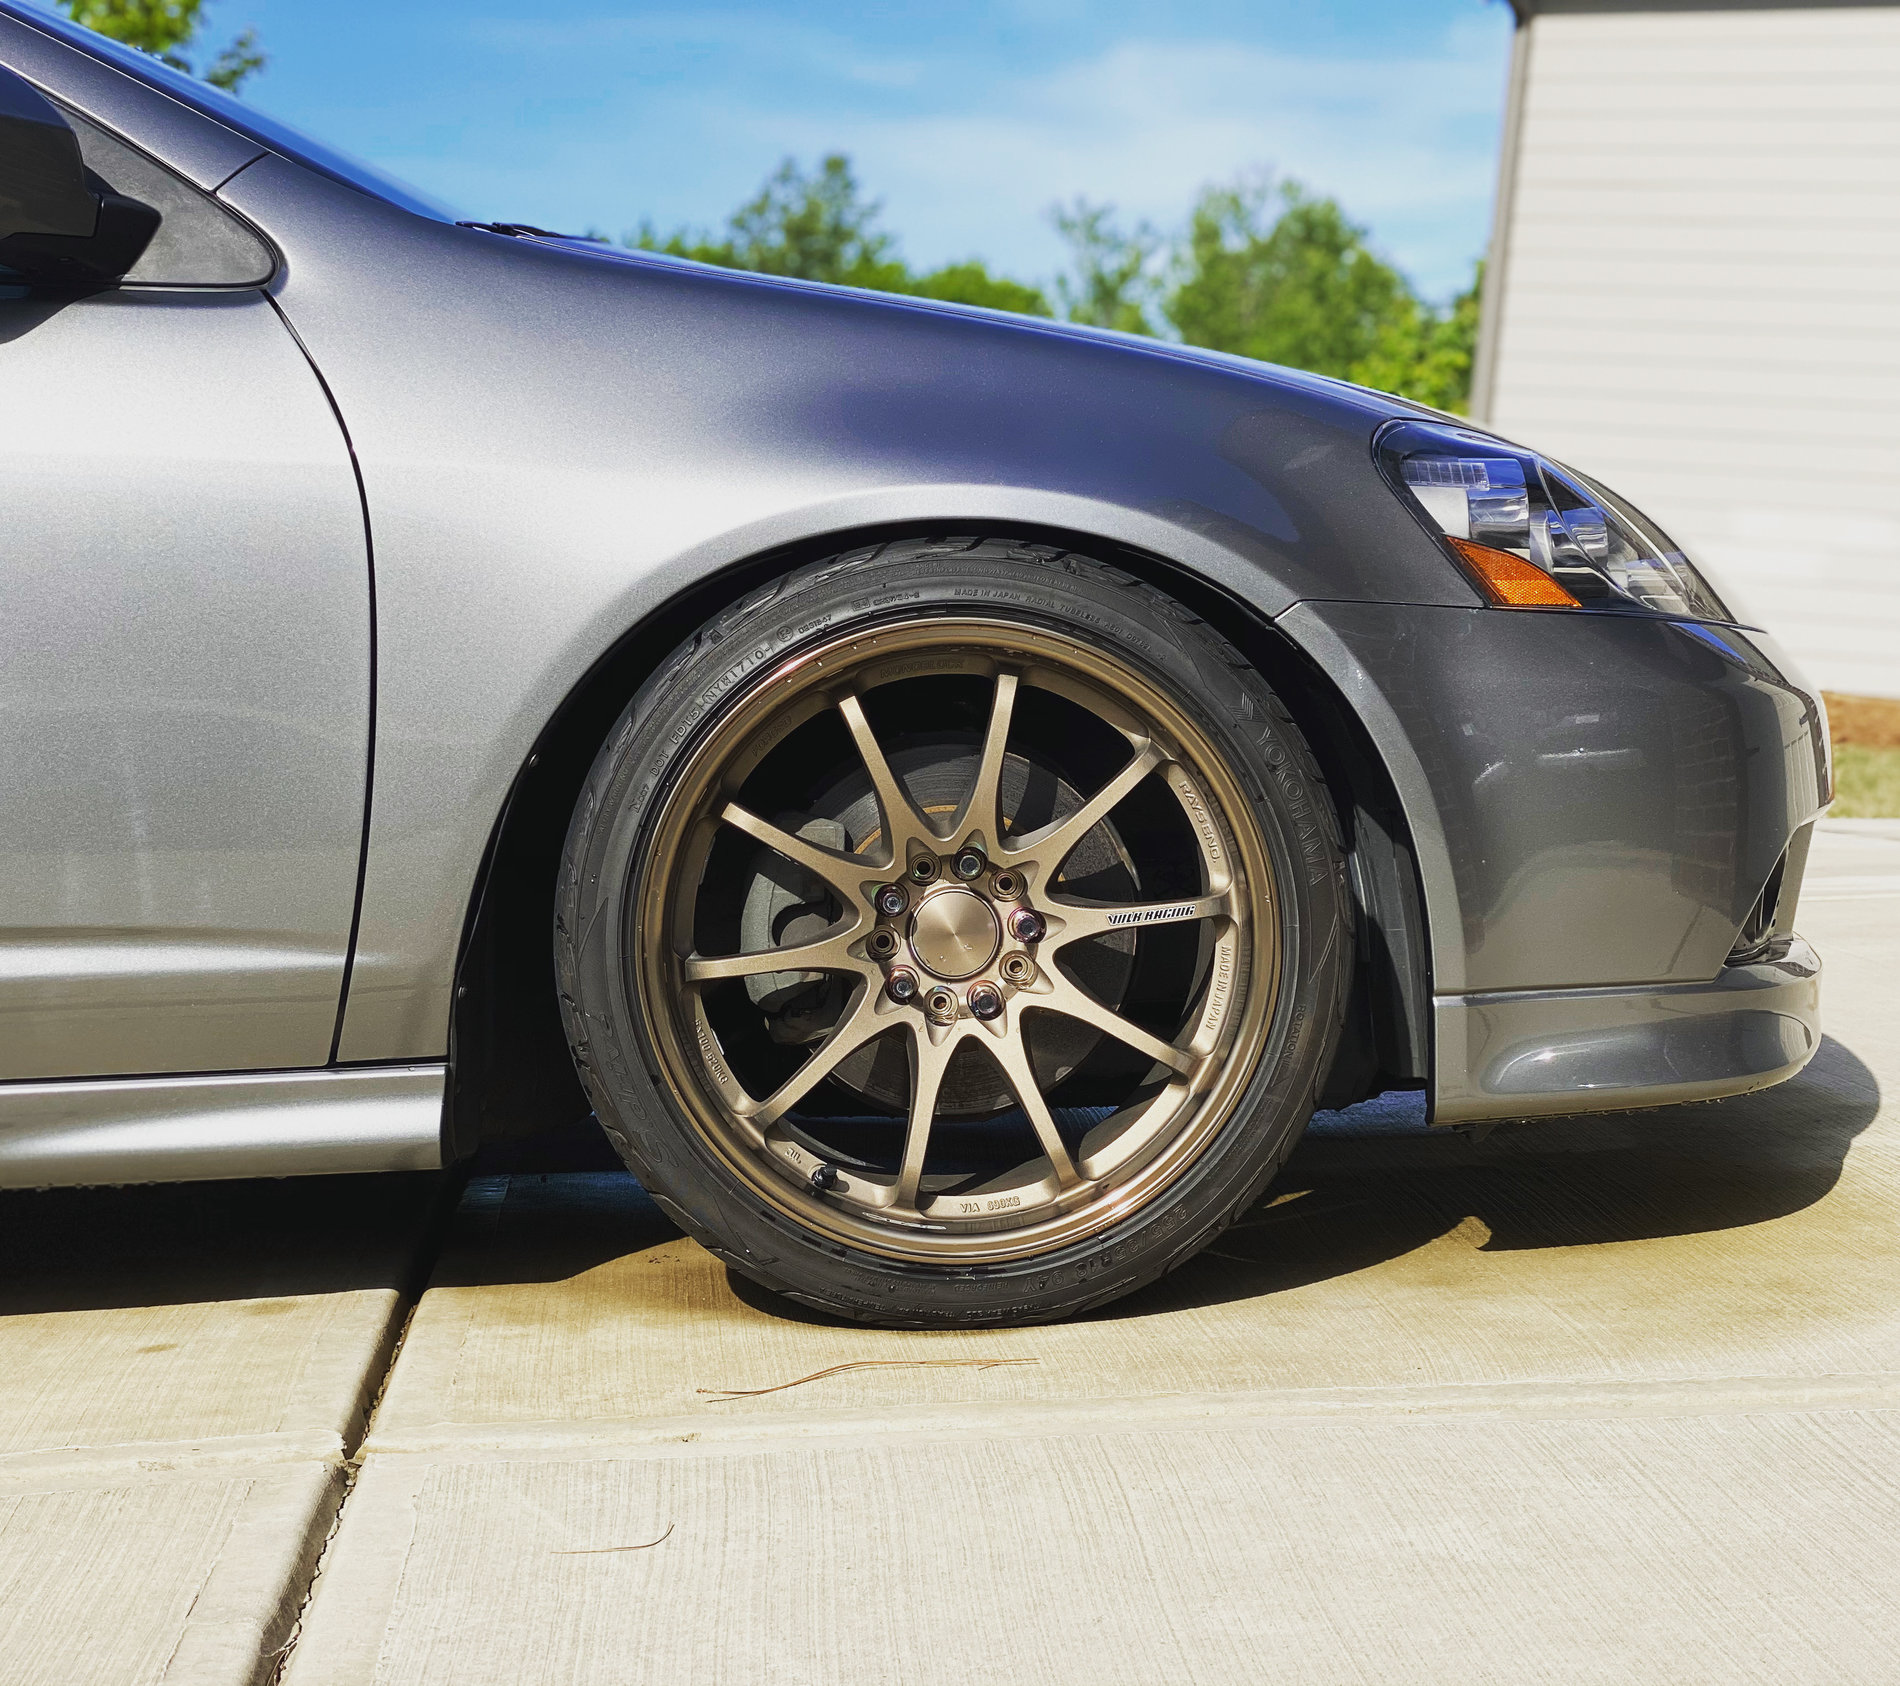 FS: Super Mint Gt30t 2006 Acura RSX-S On Ce28n's